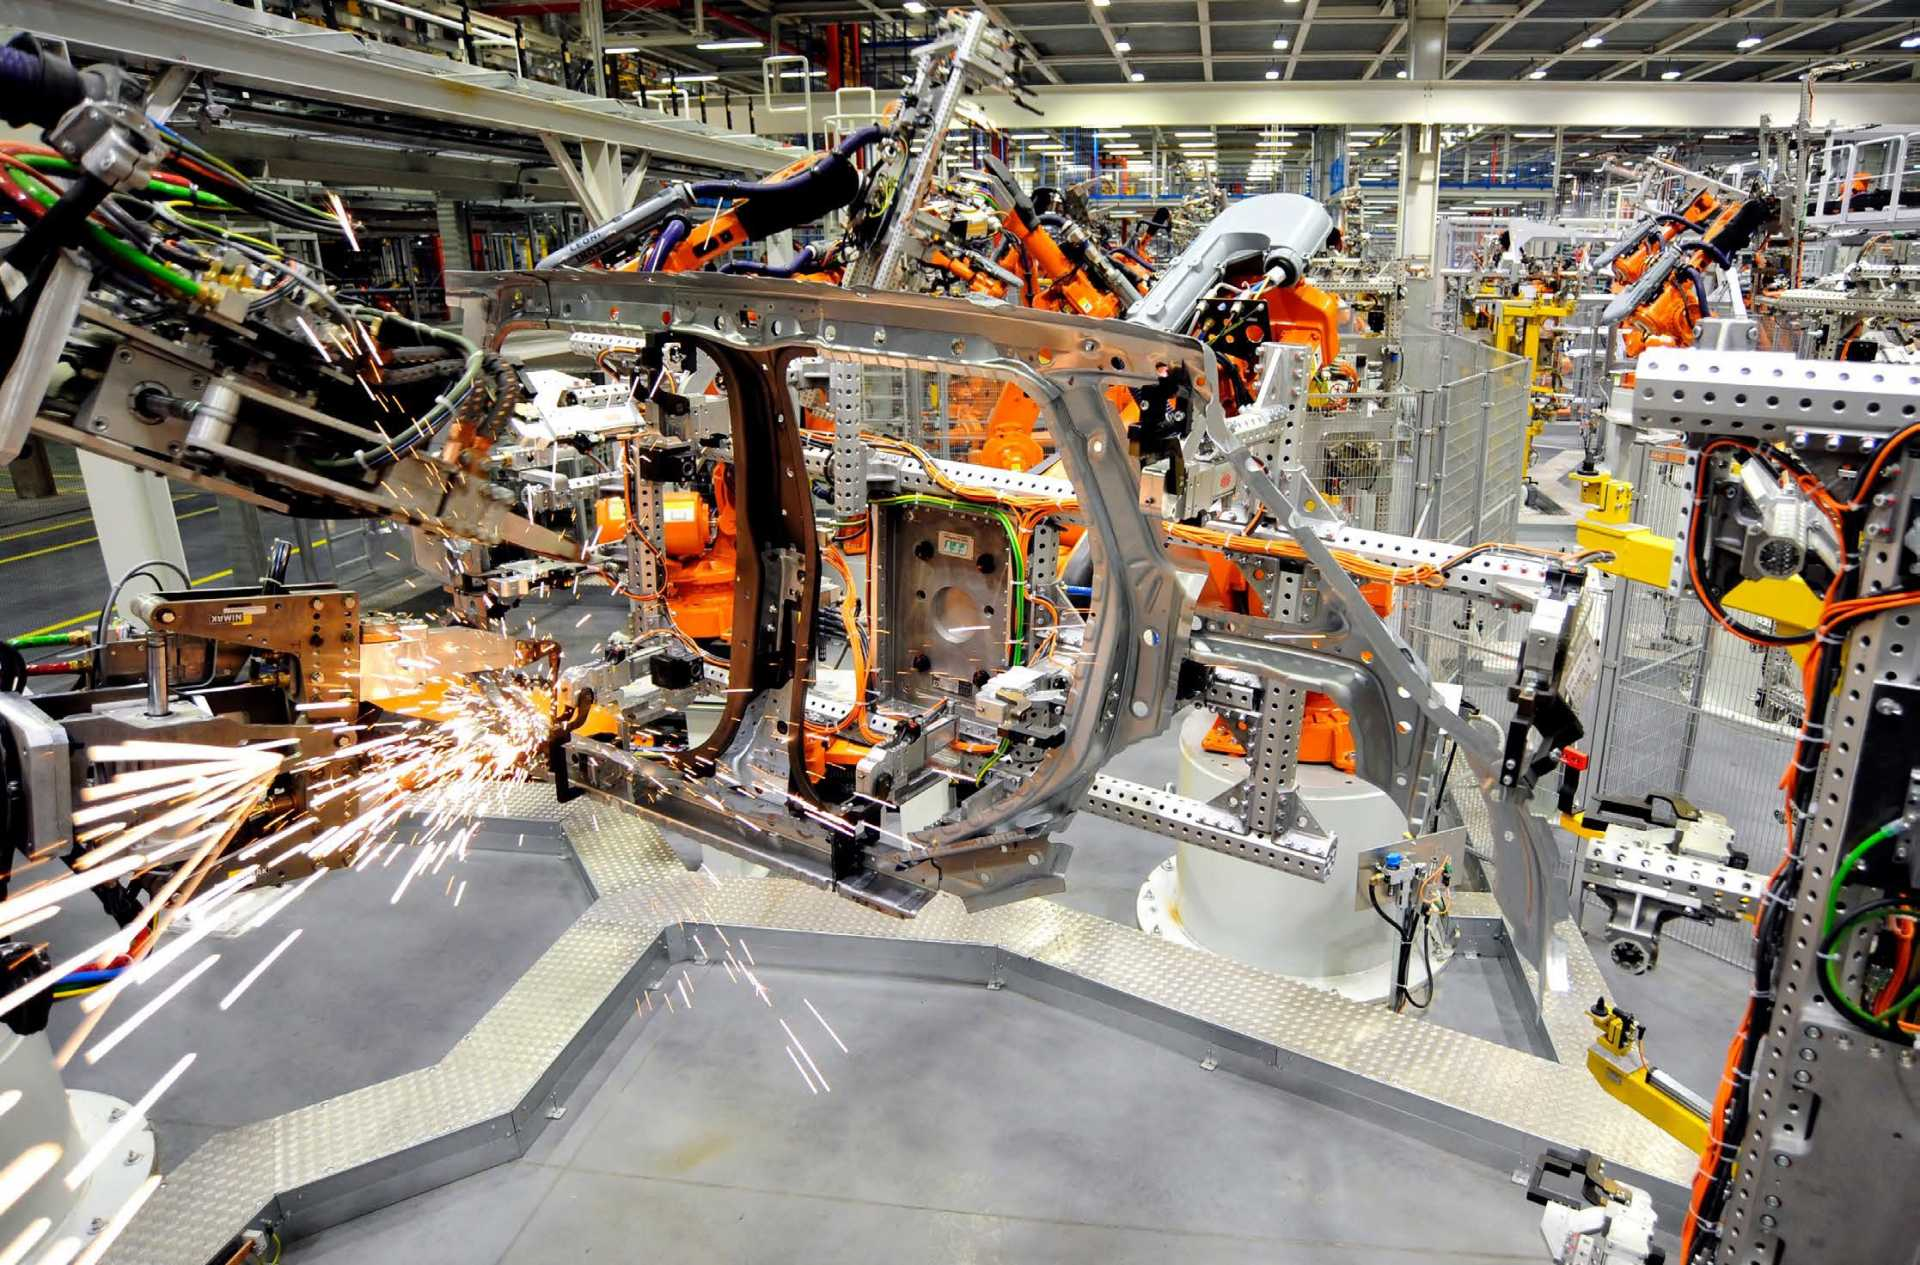 Robot welding in the bodyshop - image courtesy of MINI Oxford